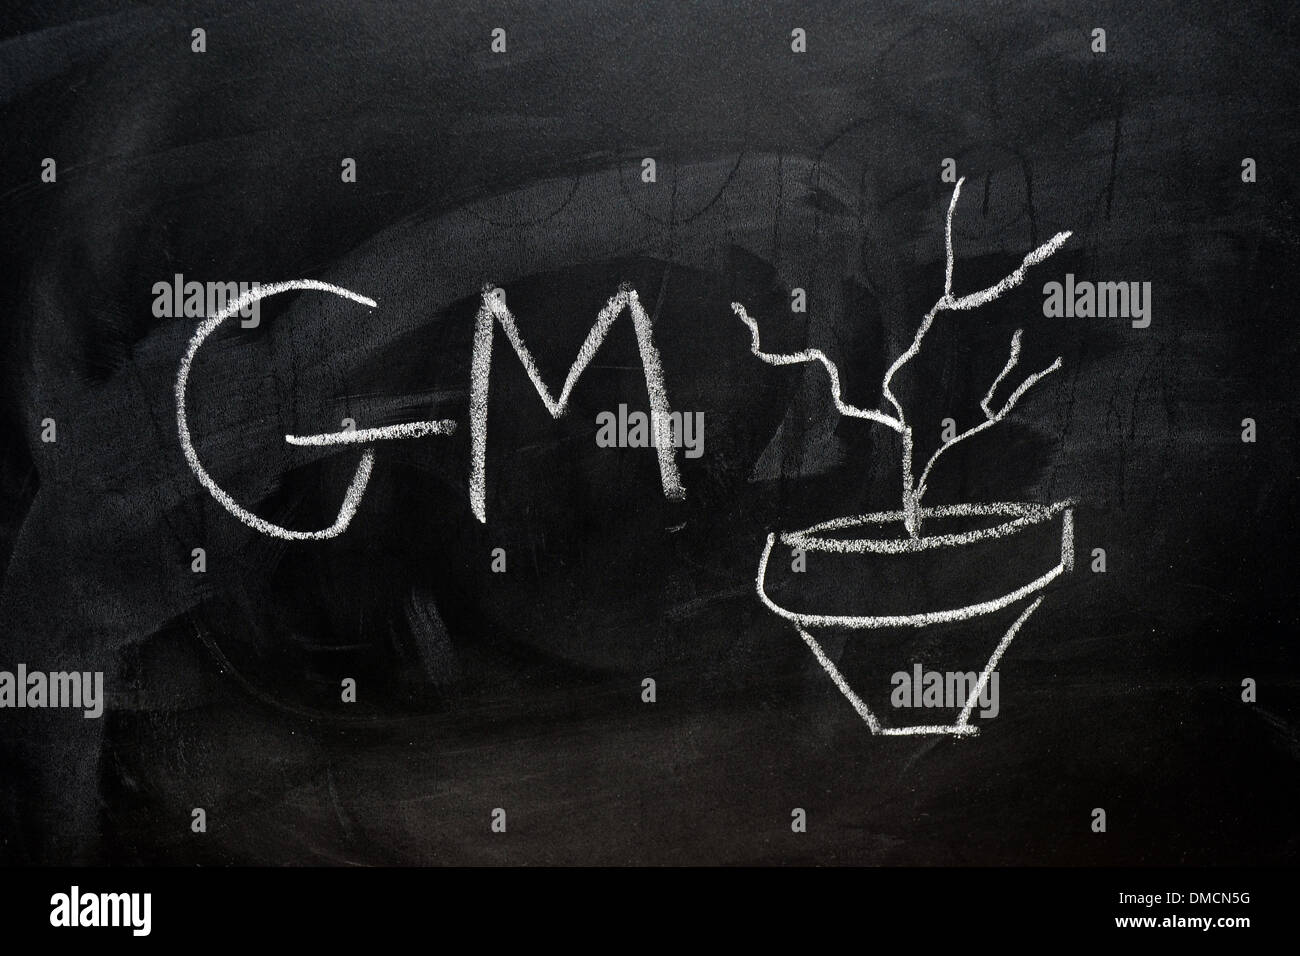 GM and a dead plant drawn on a blackboard in white chalk. - Stock Image